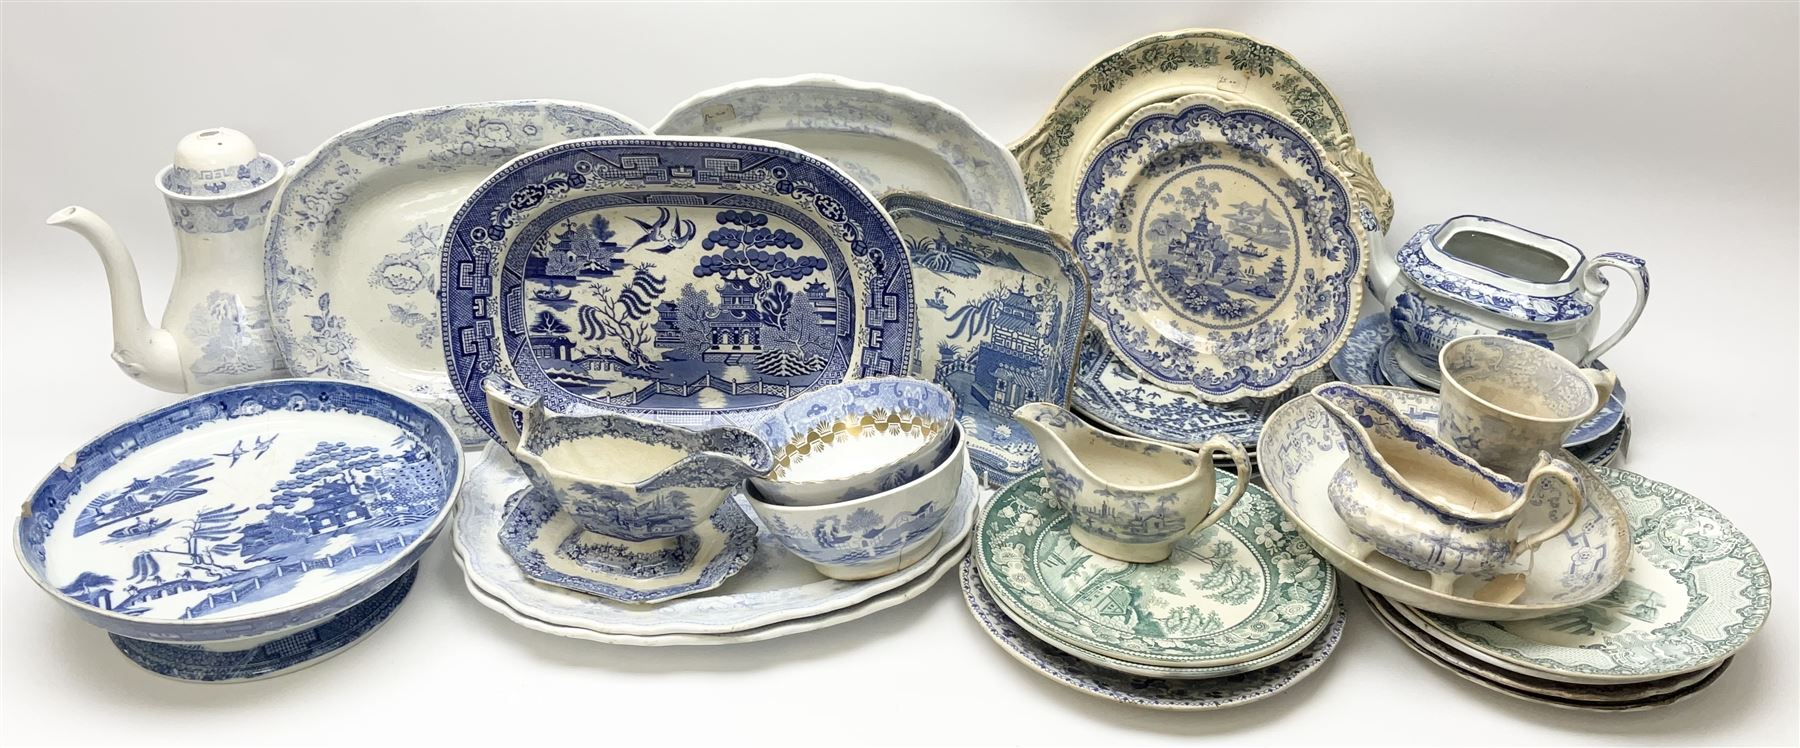 A large group of 19th century and later transfer printed pottery